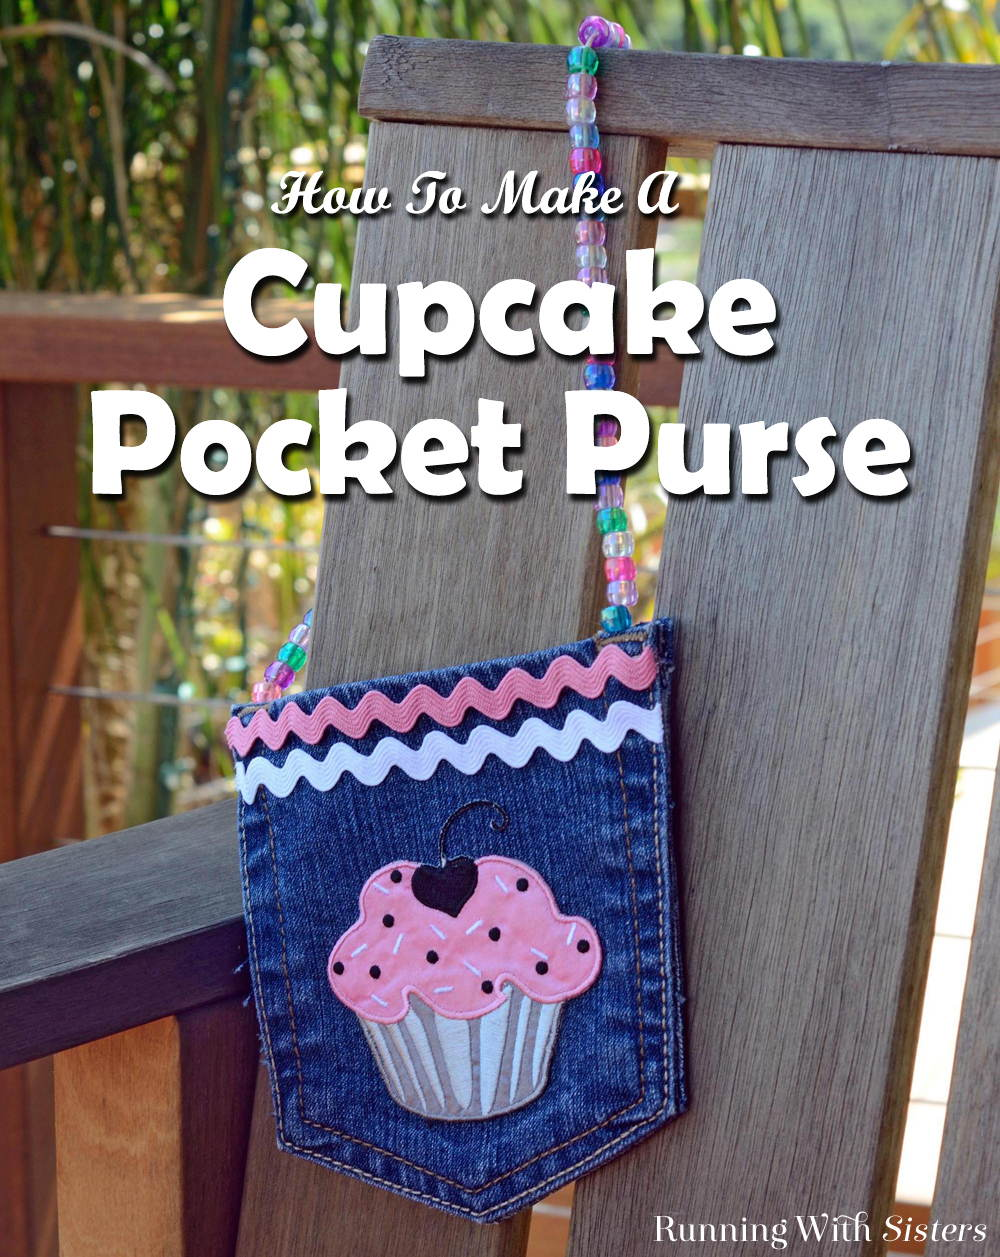 Turn an old pair of blue jeans into a pocket purse! Cut the back pocket, embellish with a cupcake applique, and make a handle with pony beads.